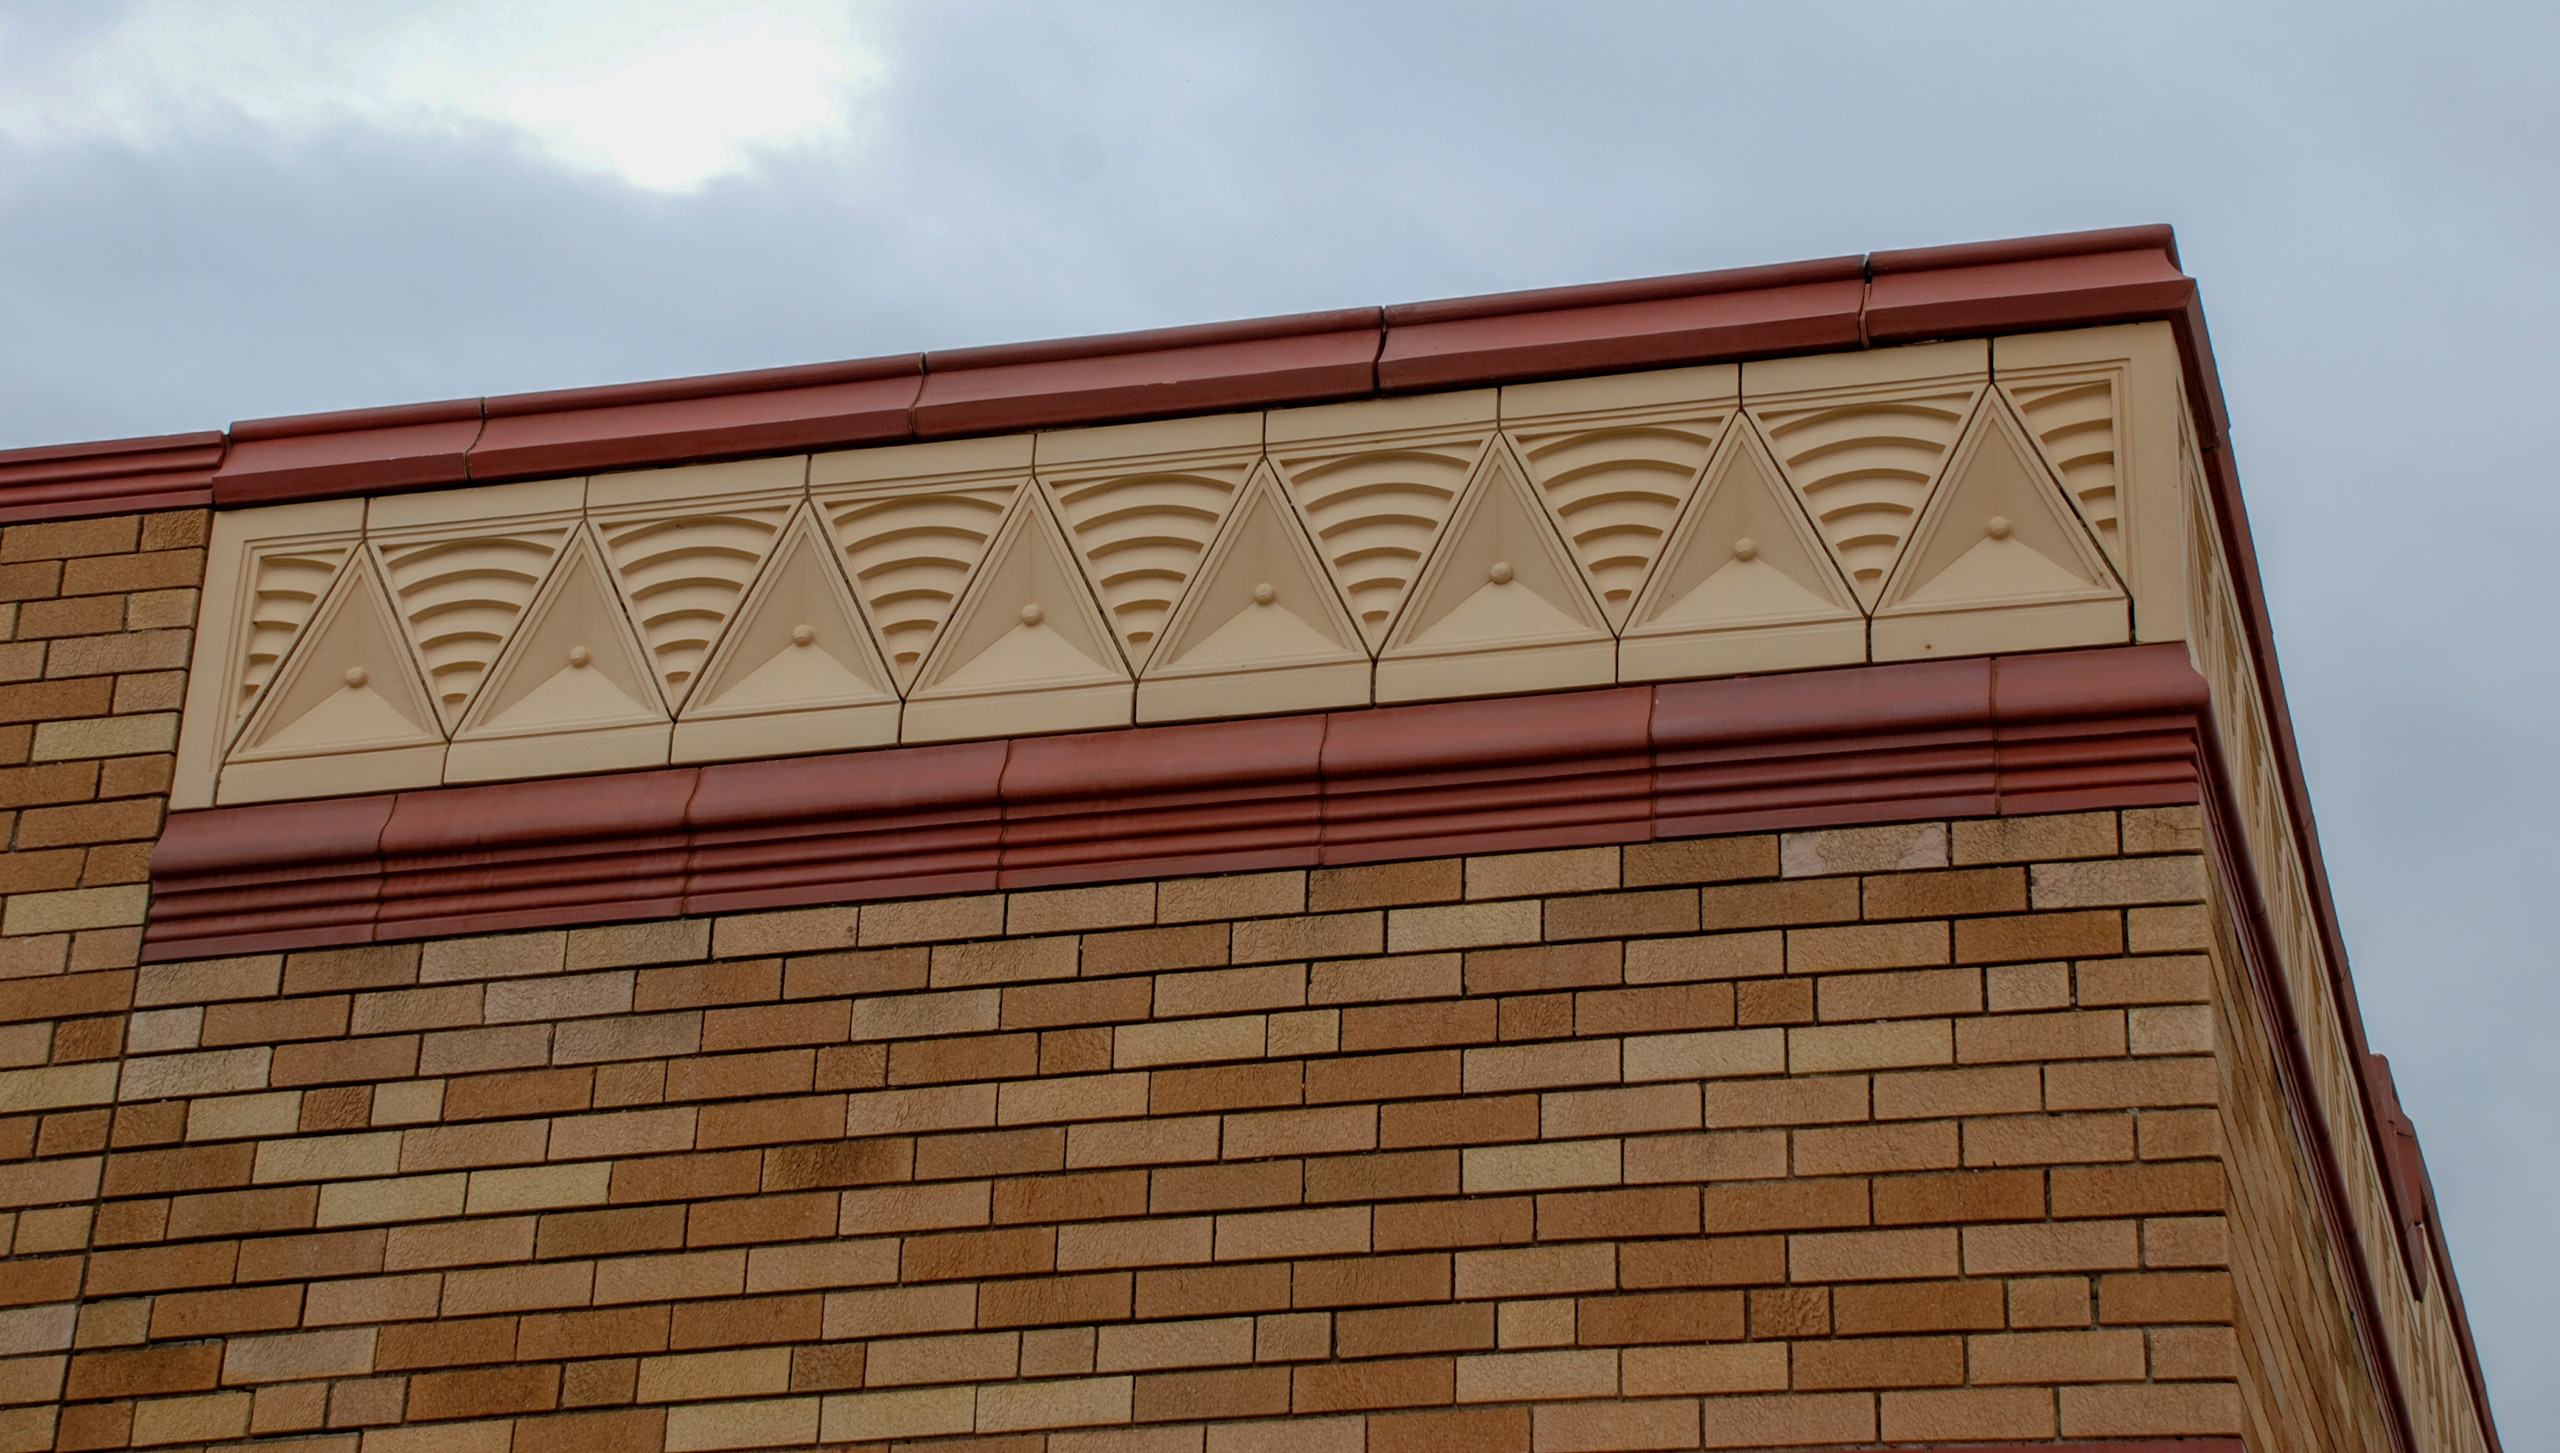 Art Deco in style, this building cornice banding was salvaged in 2008.